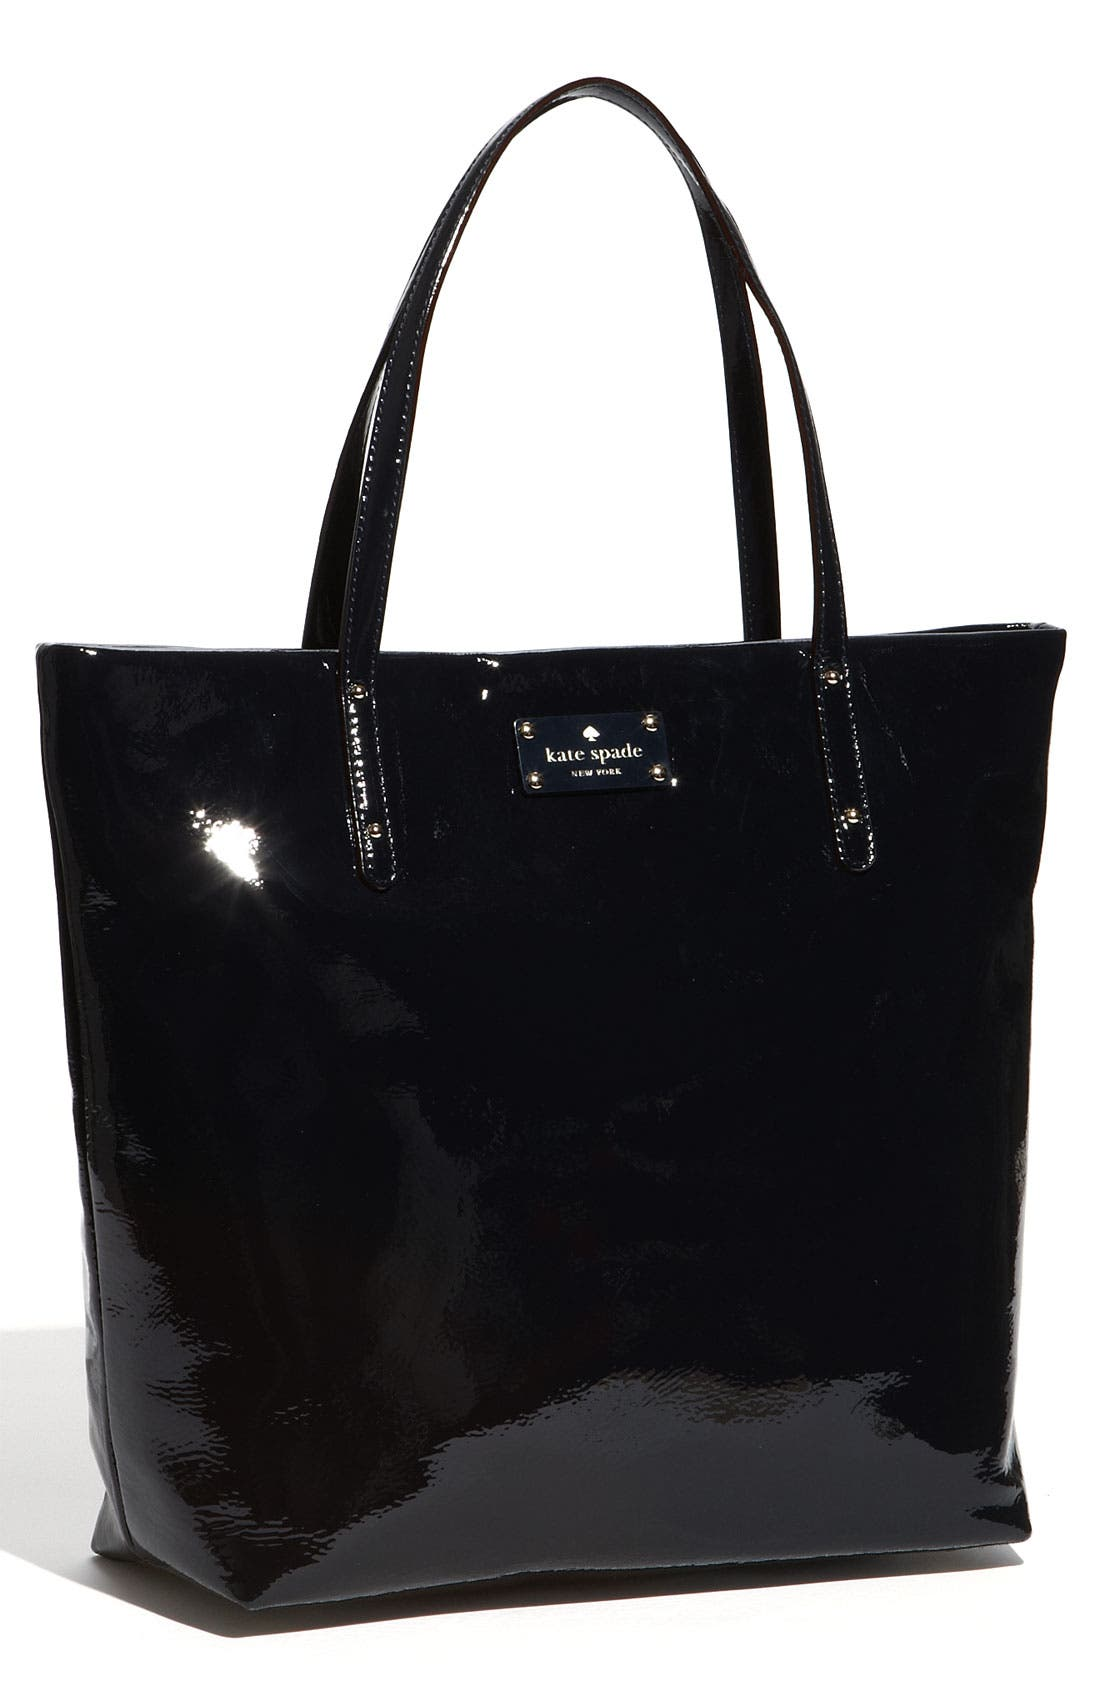 Main Image - kate spade new york 'flicker' shopper